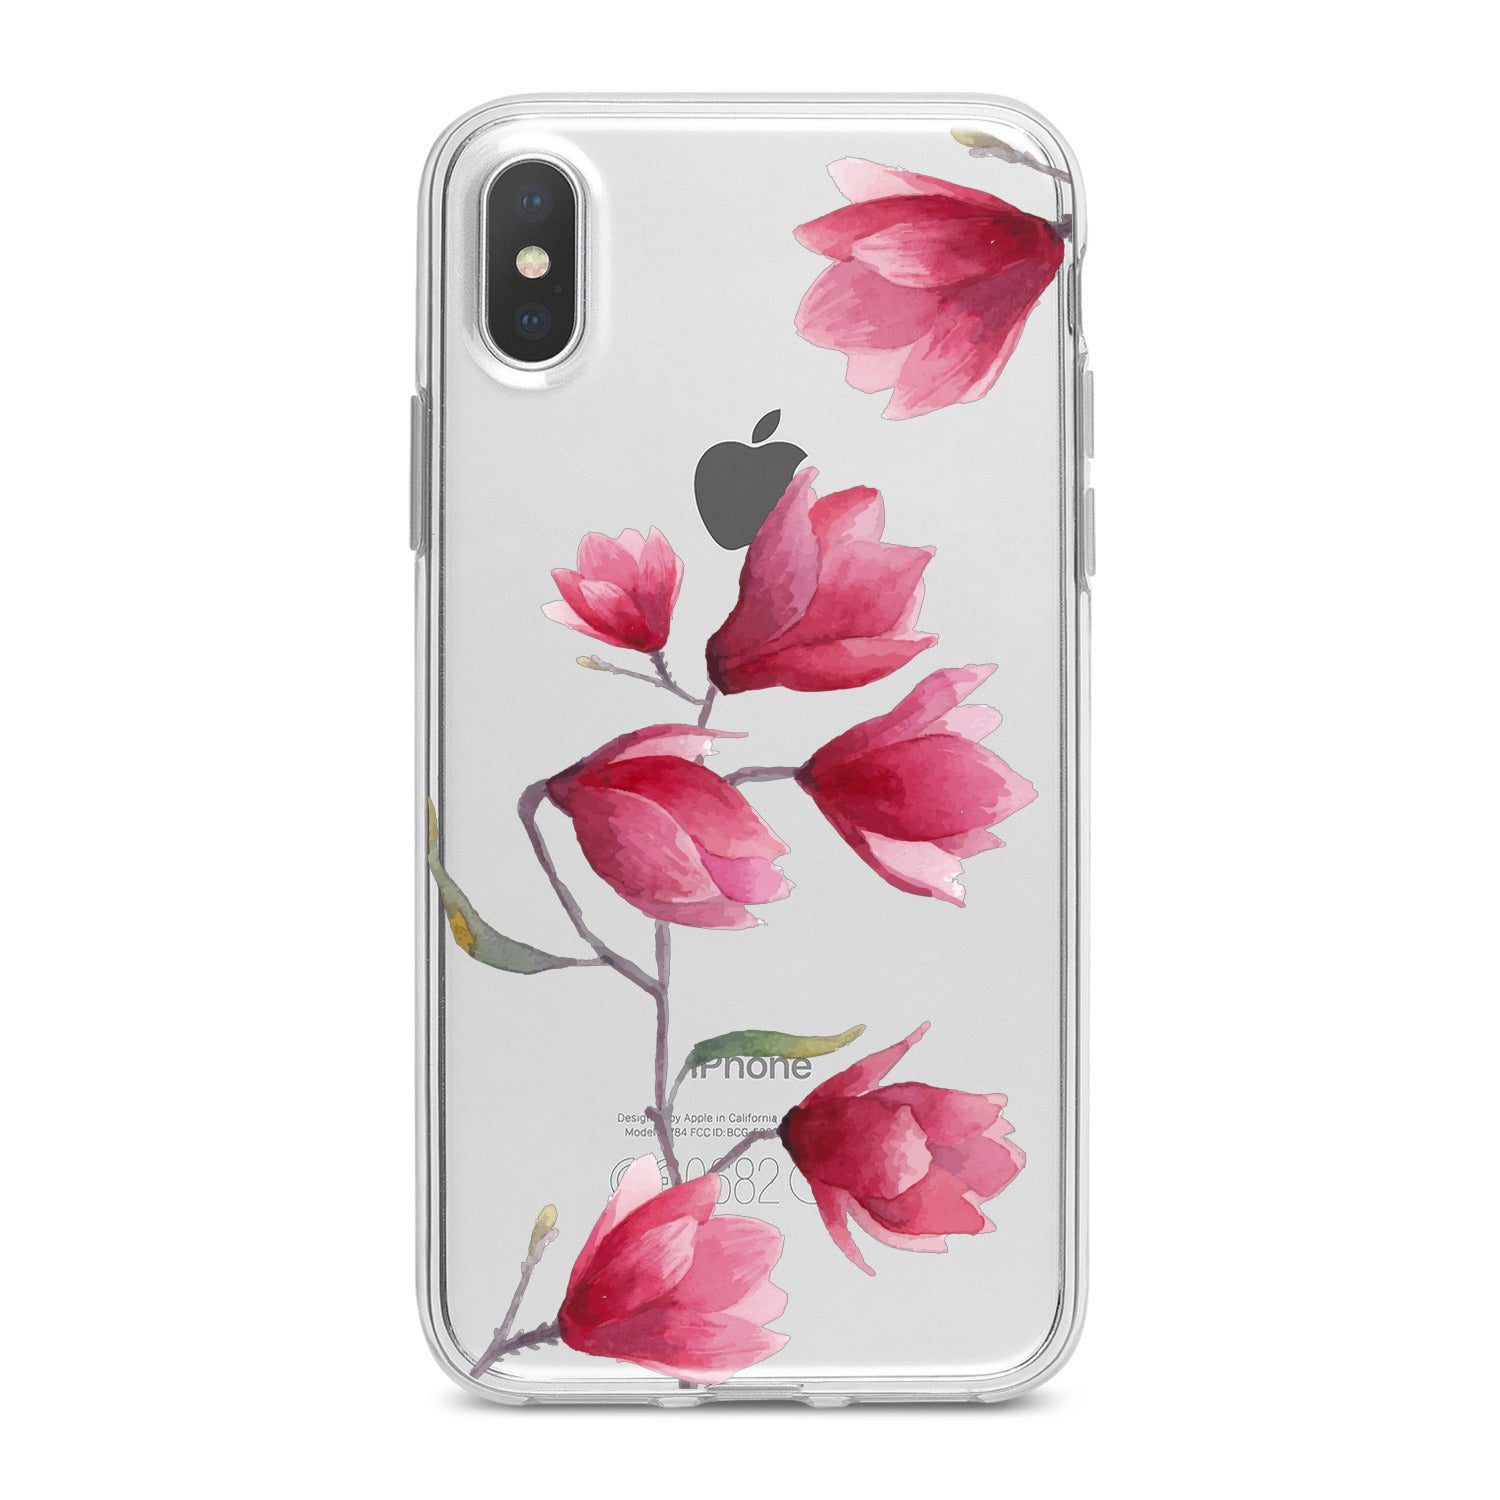 Lex Altern Magnolia Flowers Phone Case for your iPhone & Android phone.